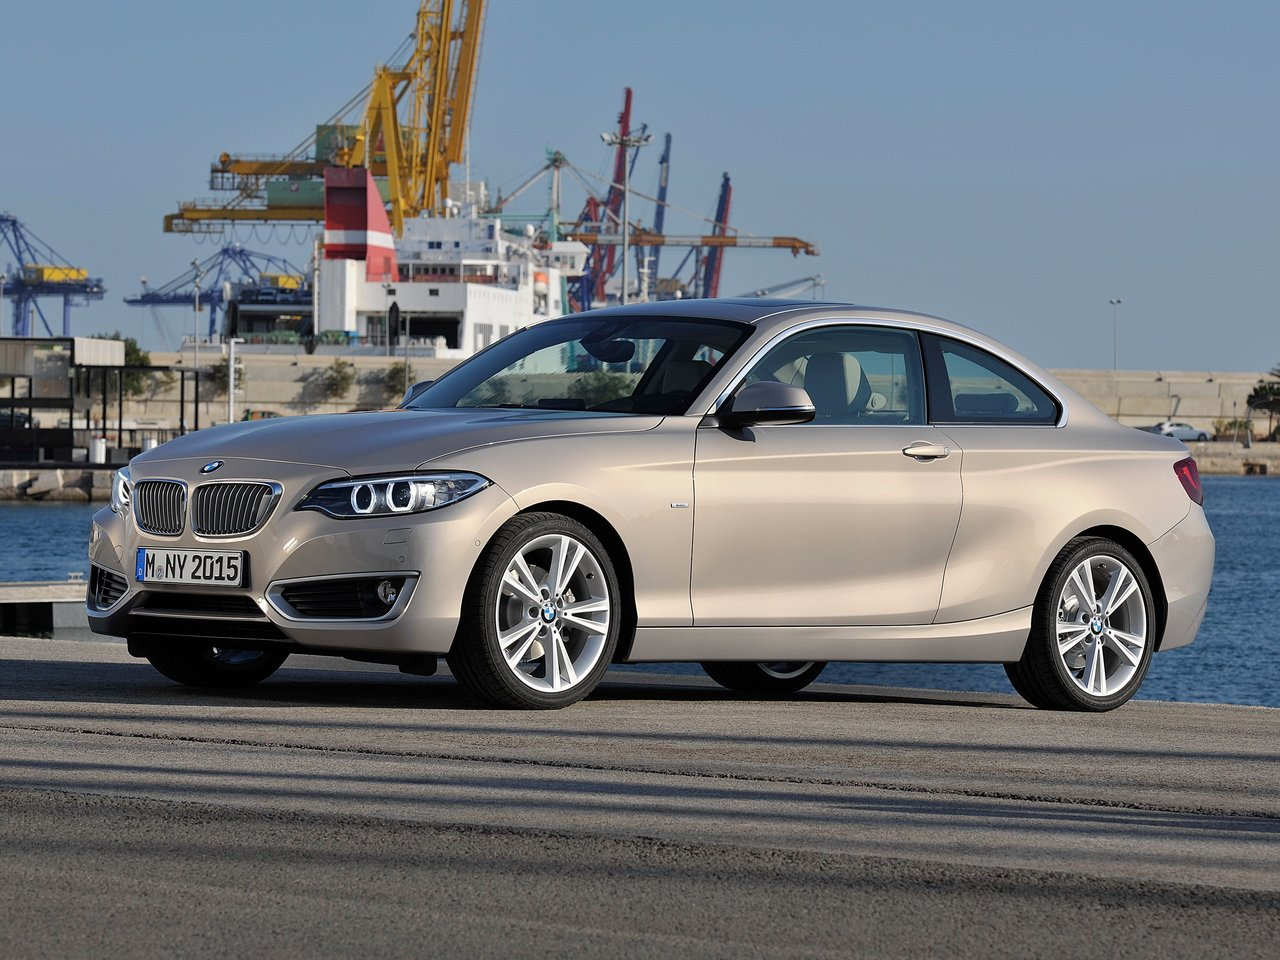 Снимки: Bmw 2er Coupe (F22)